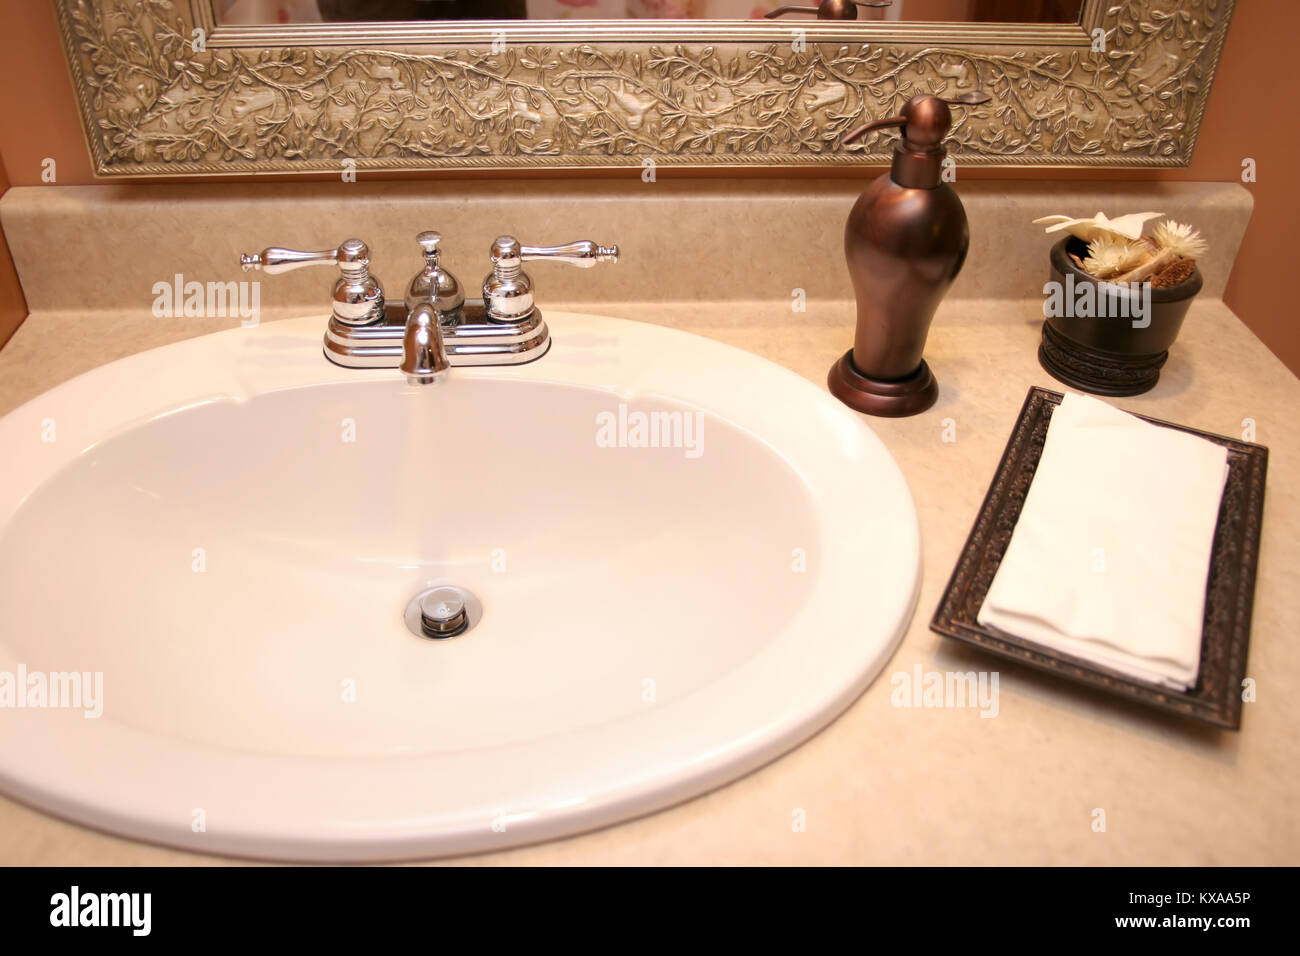 Apartment Bathroom Faucet Stock Photos & Apartment Bathroom Faucet ...